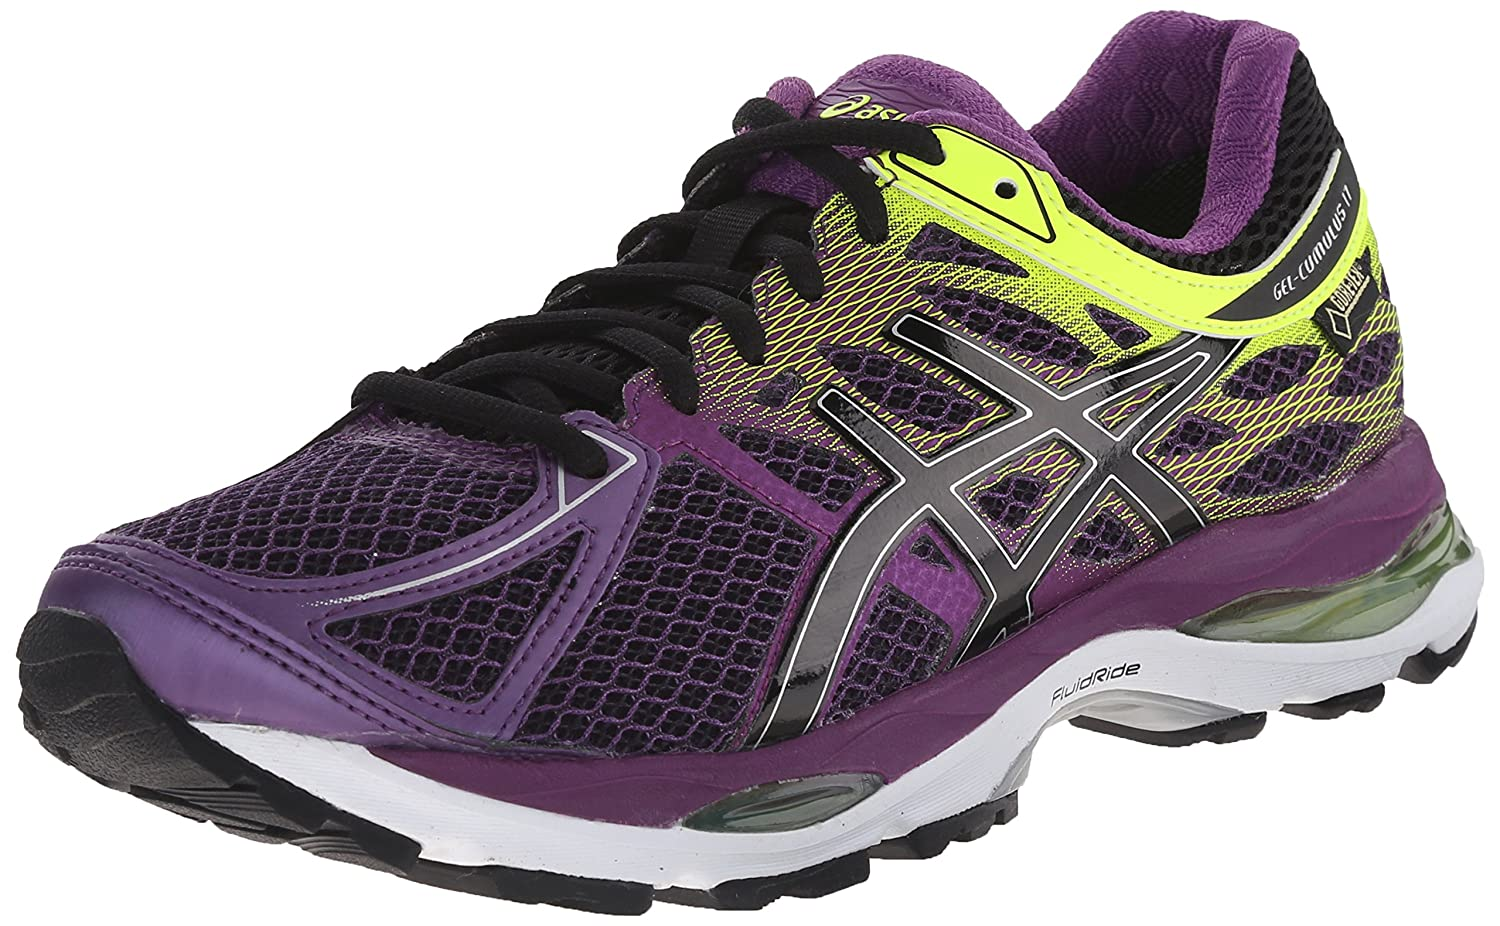 Plum Onyx Flash Yellow ASICS Women's Gel-Cumulus 17 G TX Running shoes